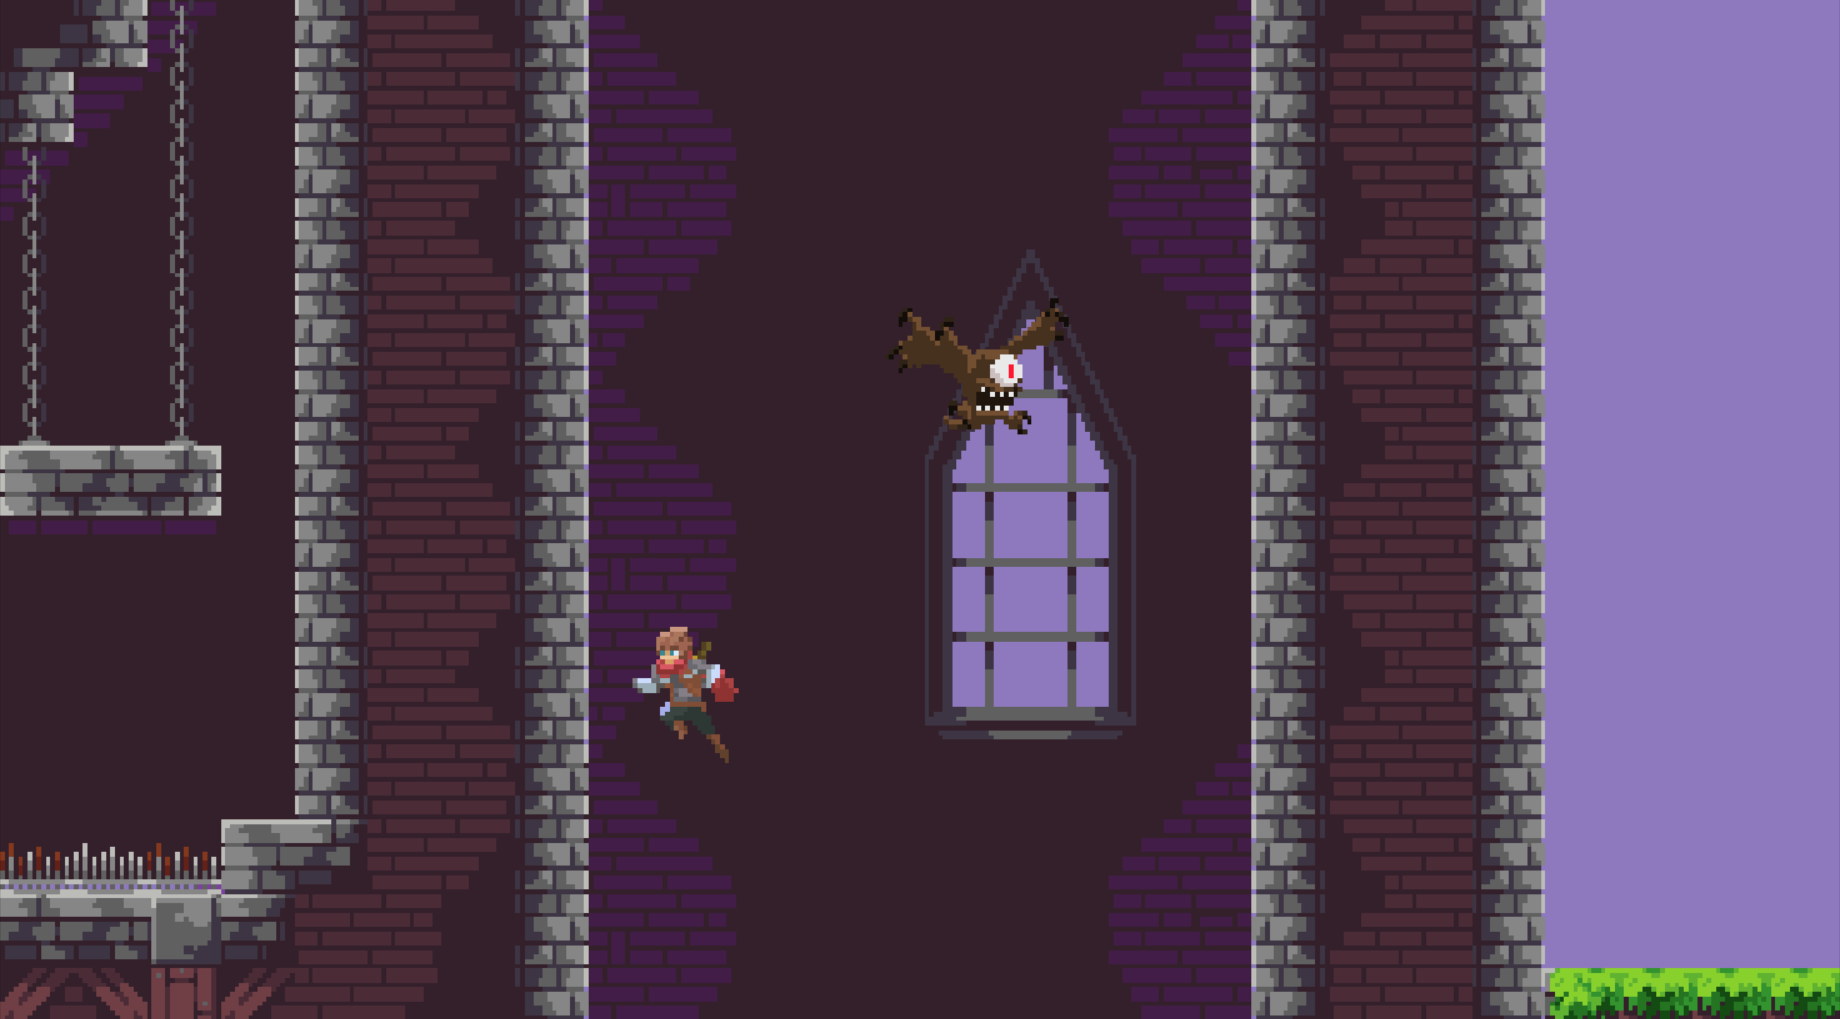 Jumping across walls minigame